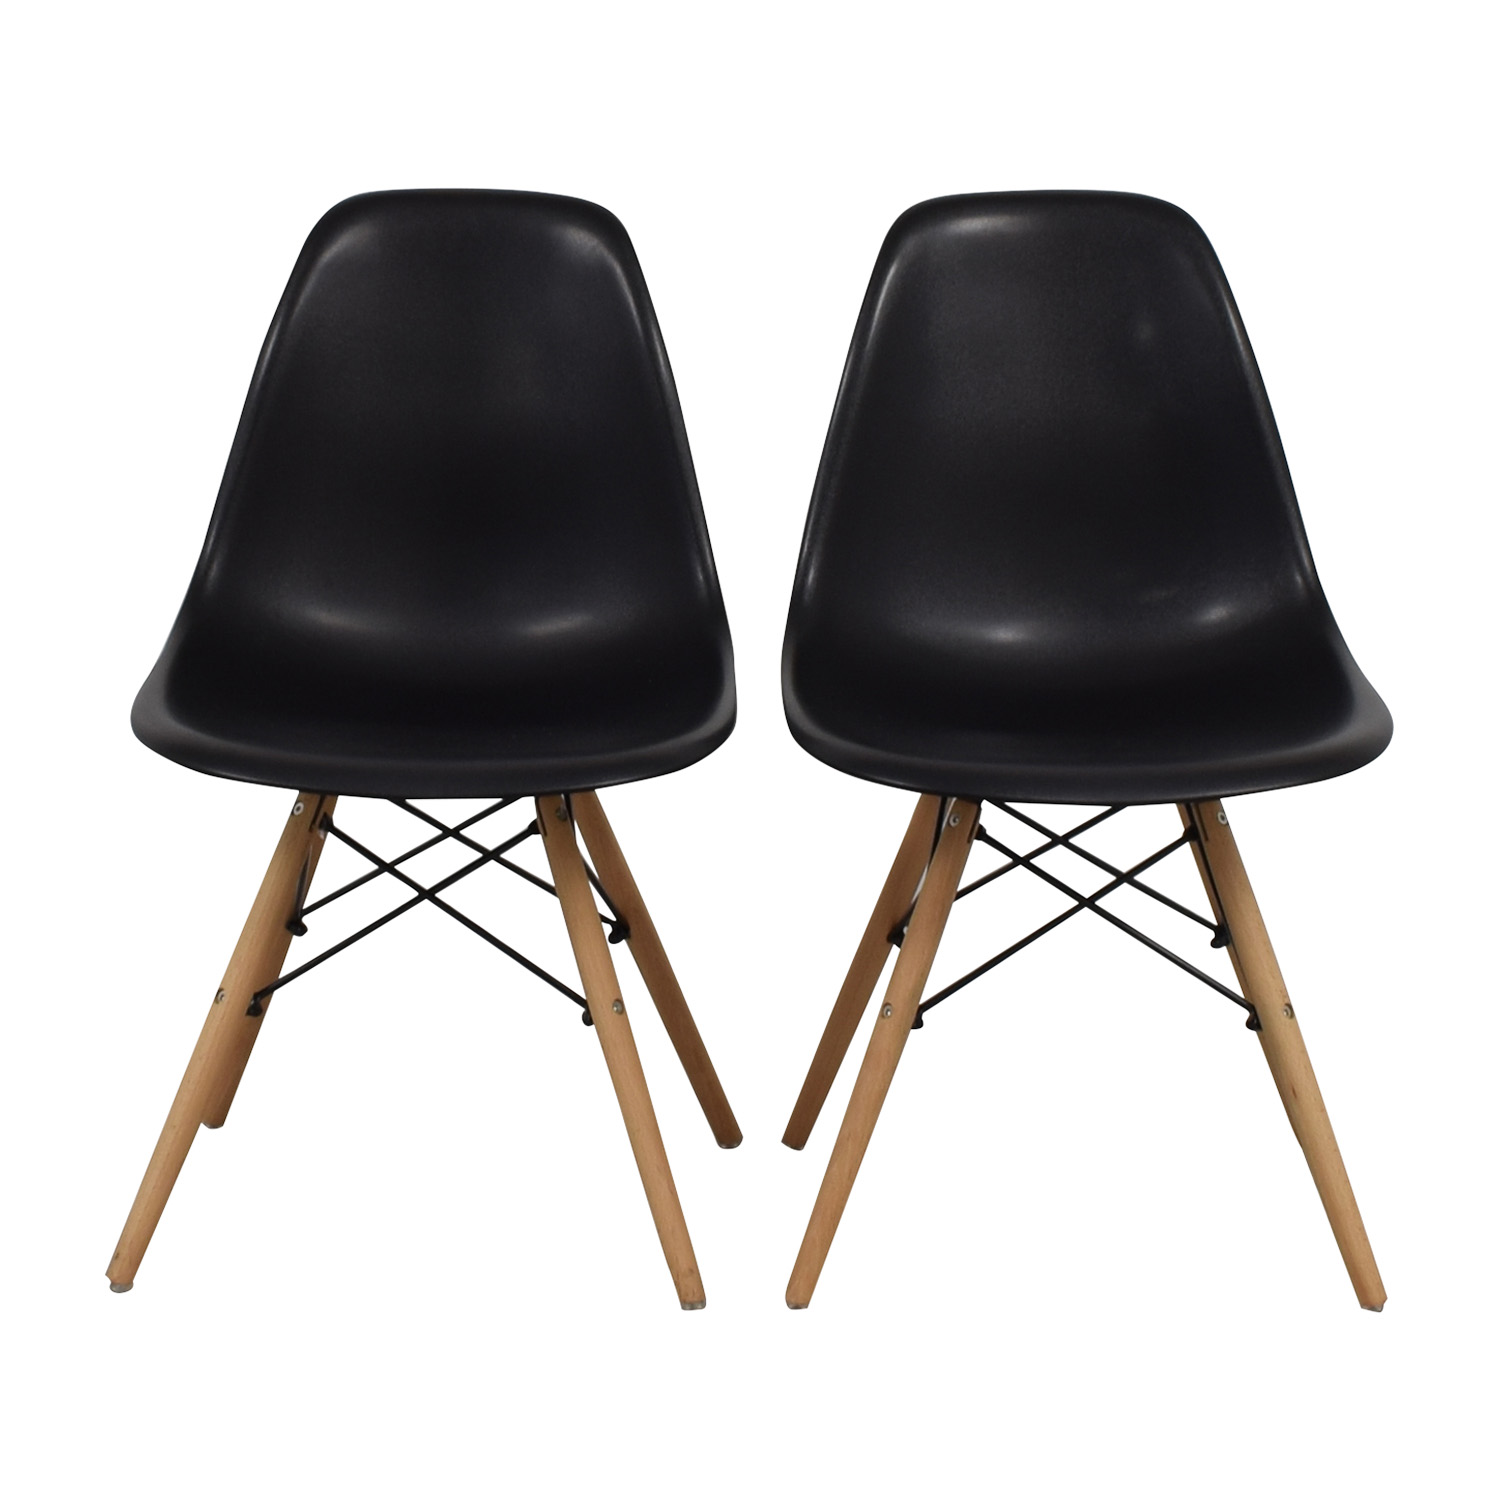 CB2 CB2 Black and Beech Wood Chairs second hand